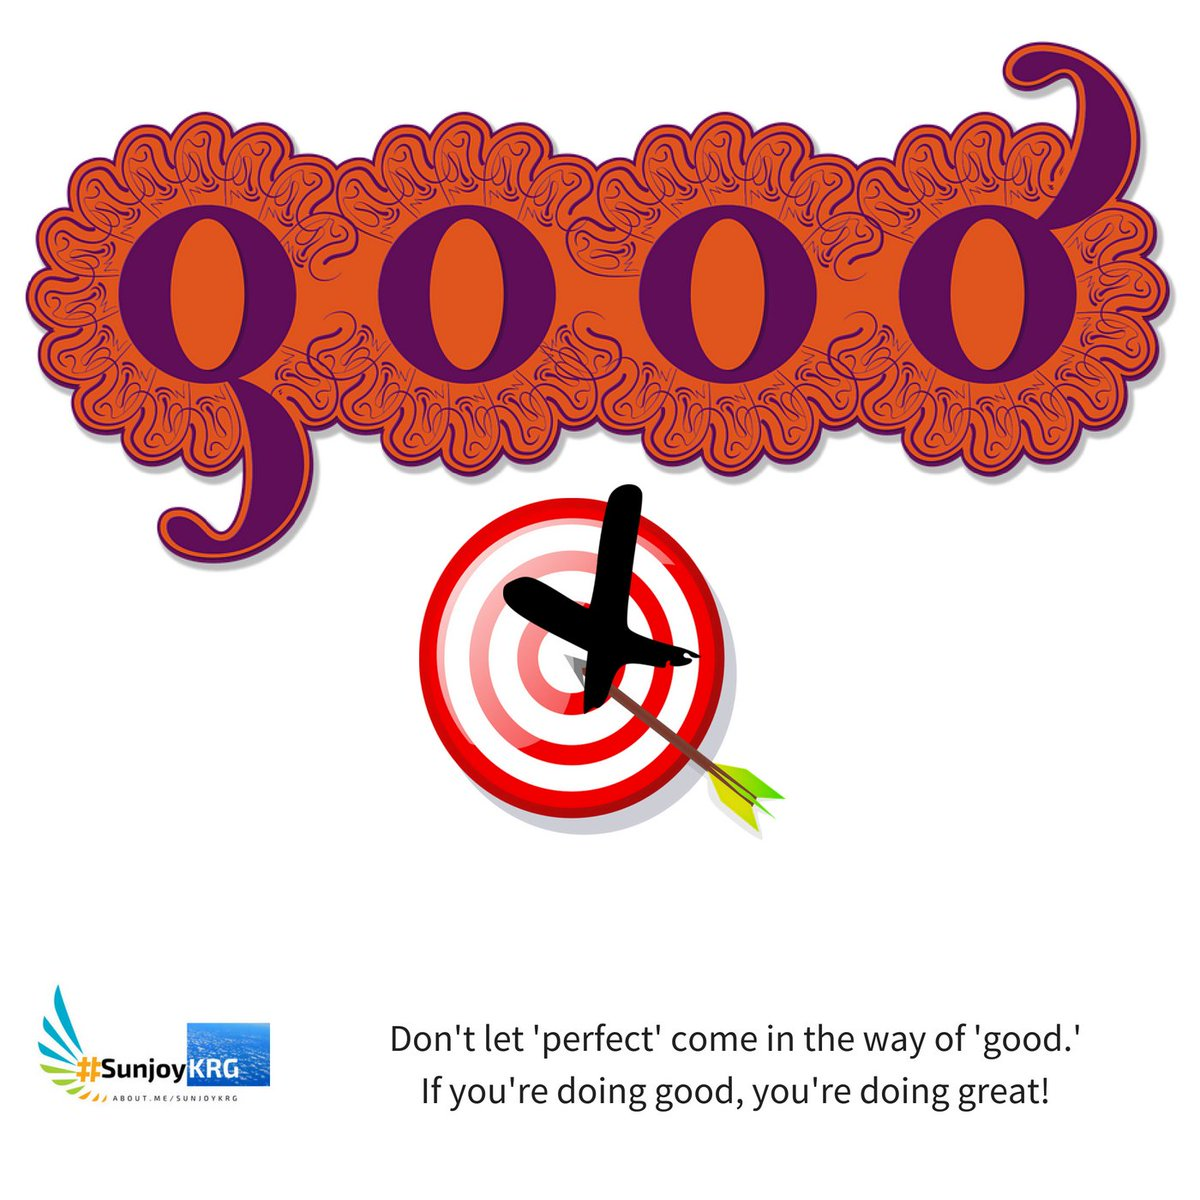 Don&#39;t let &#39;perfect&#39; come in the way of &#39;good.&#39;  If you&#39;re doing good, you&#39;re doing great! #ThinkBIGSundayWithMarsha #SundayMotivation #motivation #Inspiration #Entrepreneurship #InboundMarketing #ScaleUp #startup #India #success<br>http://pic.twitter.com/tRALRDIXch